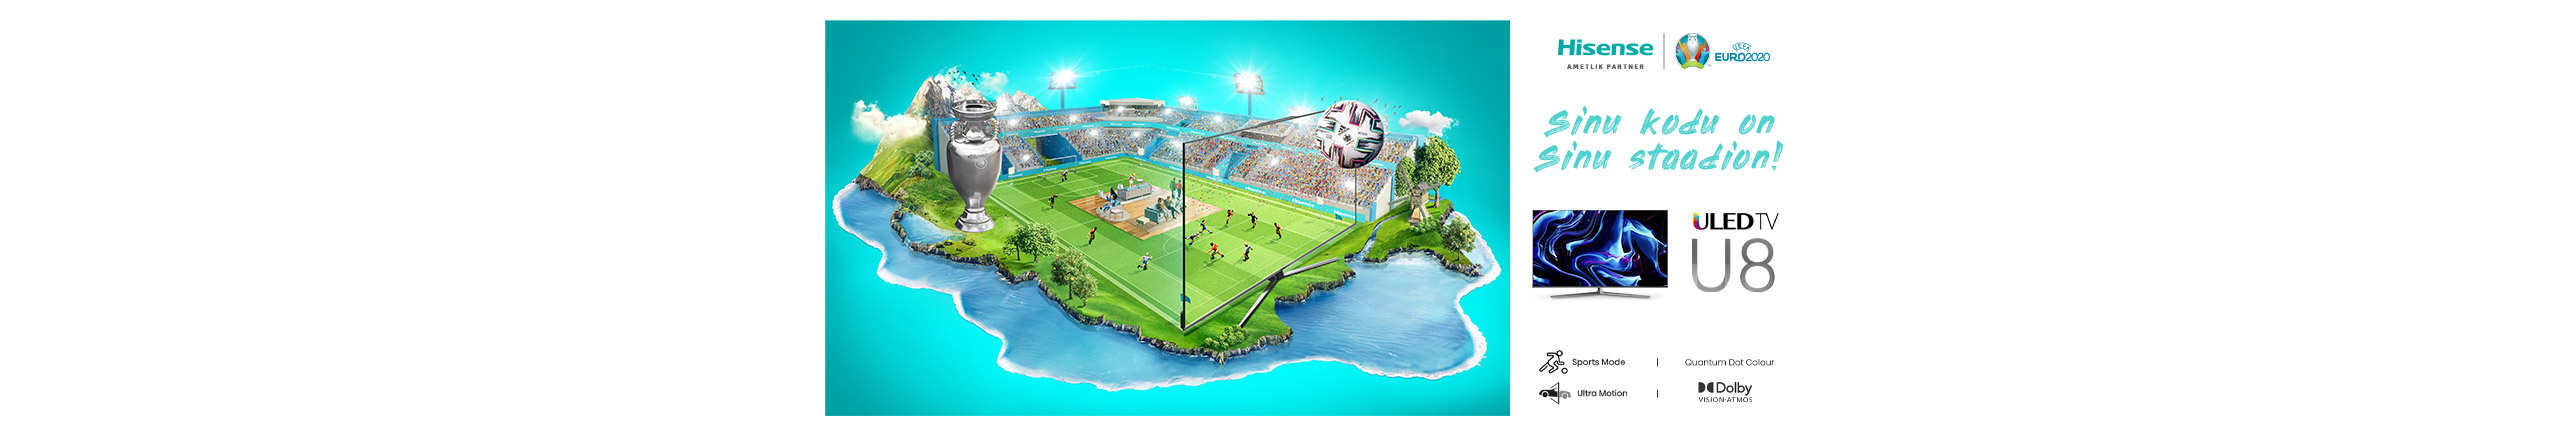 Hisense - Your home is Your stadium!